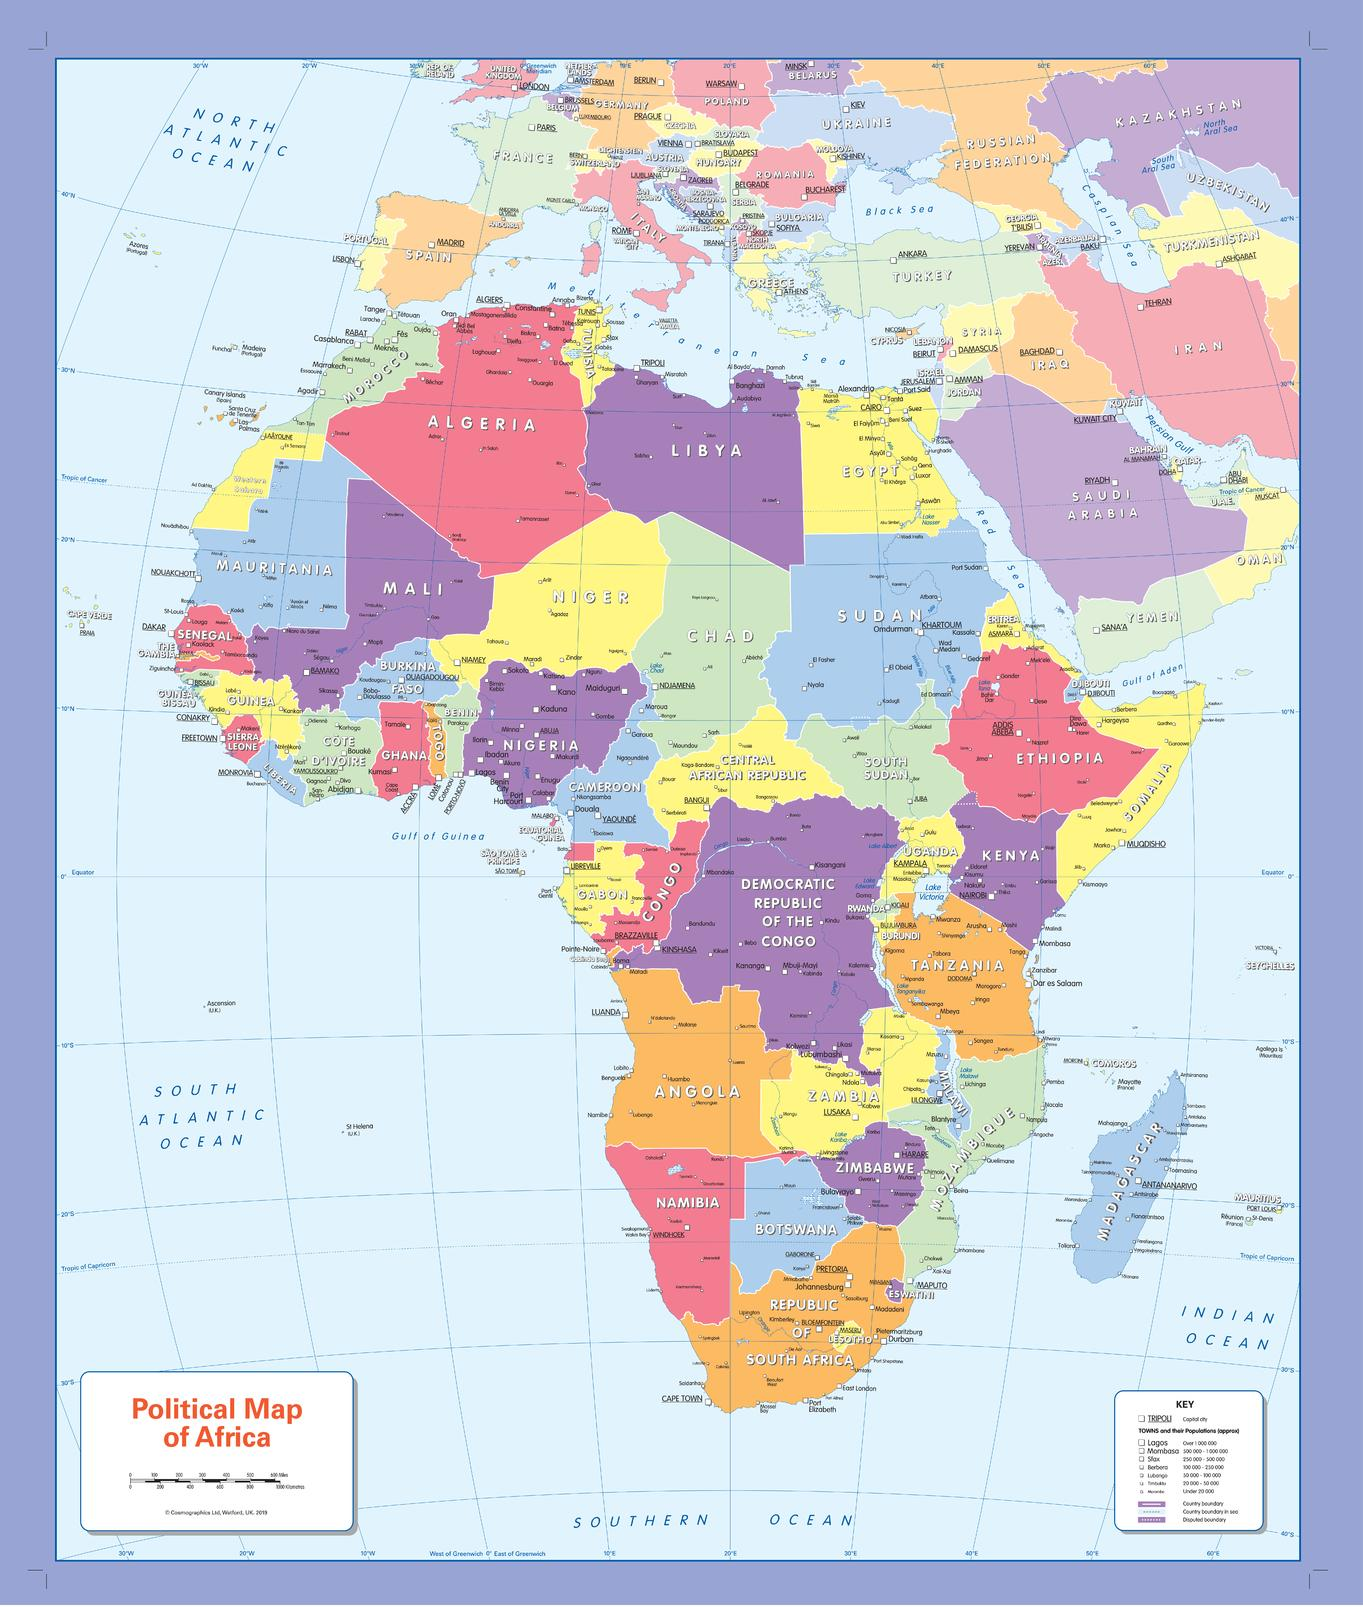 MapSherpa Cosmographics - Easy to read world map